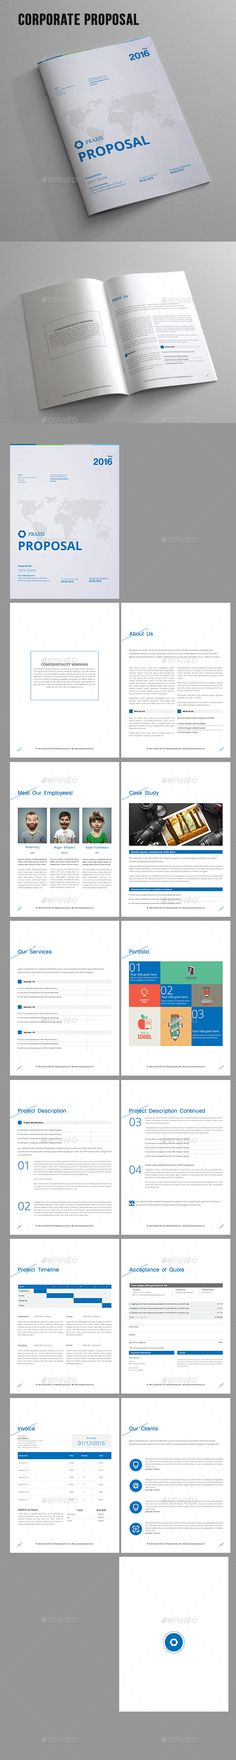 Business Proposal Template | Business Proposal Template, Business